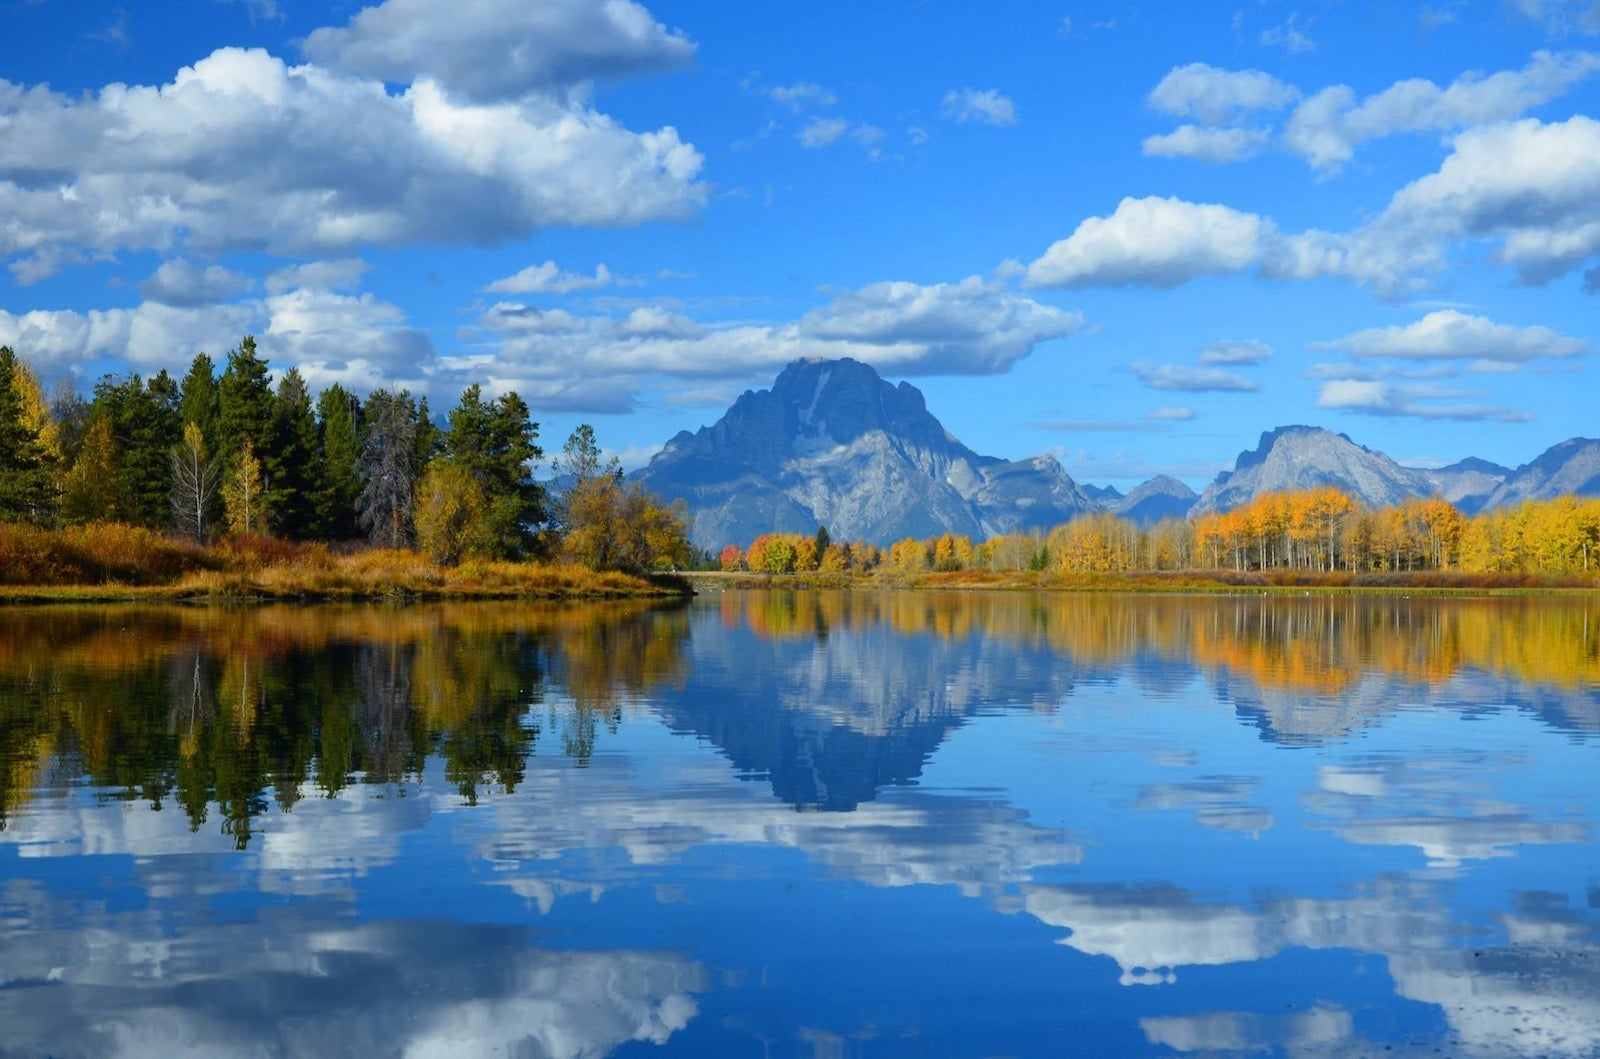 Golden aspen trees below the Grand Tetons at Oxbow Bend.